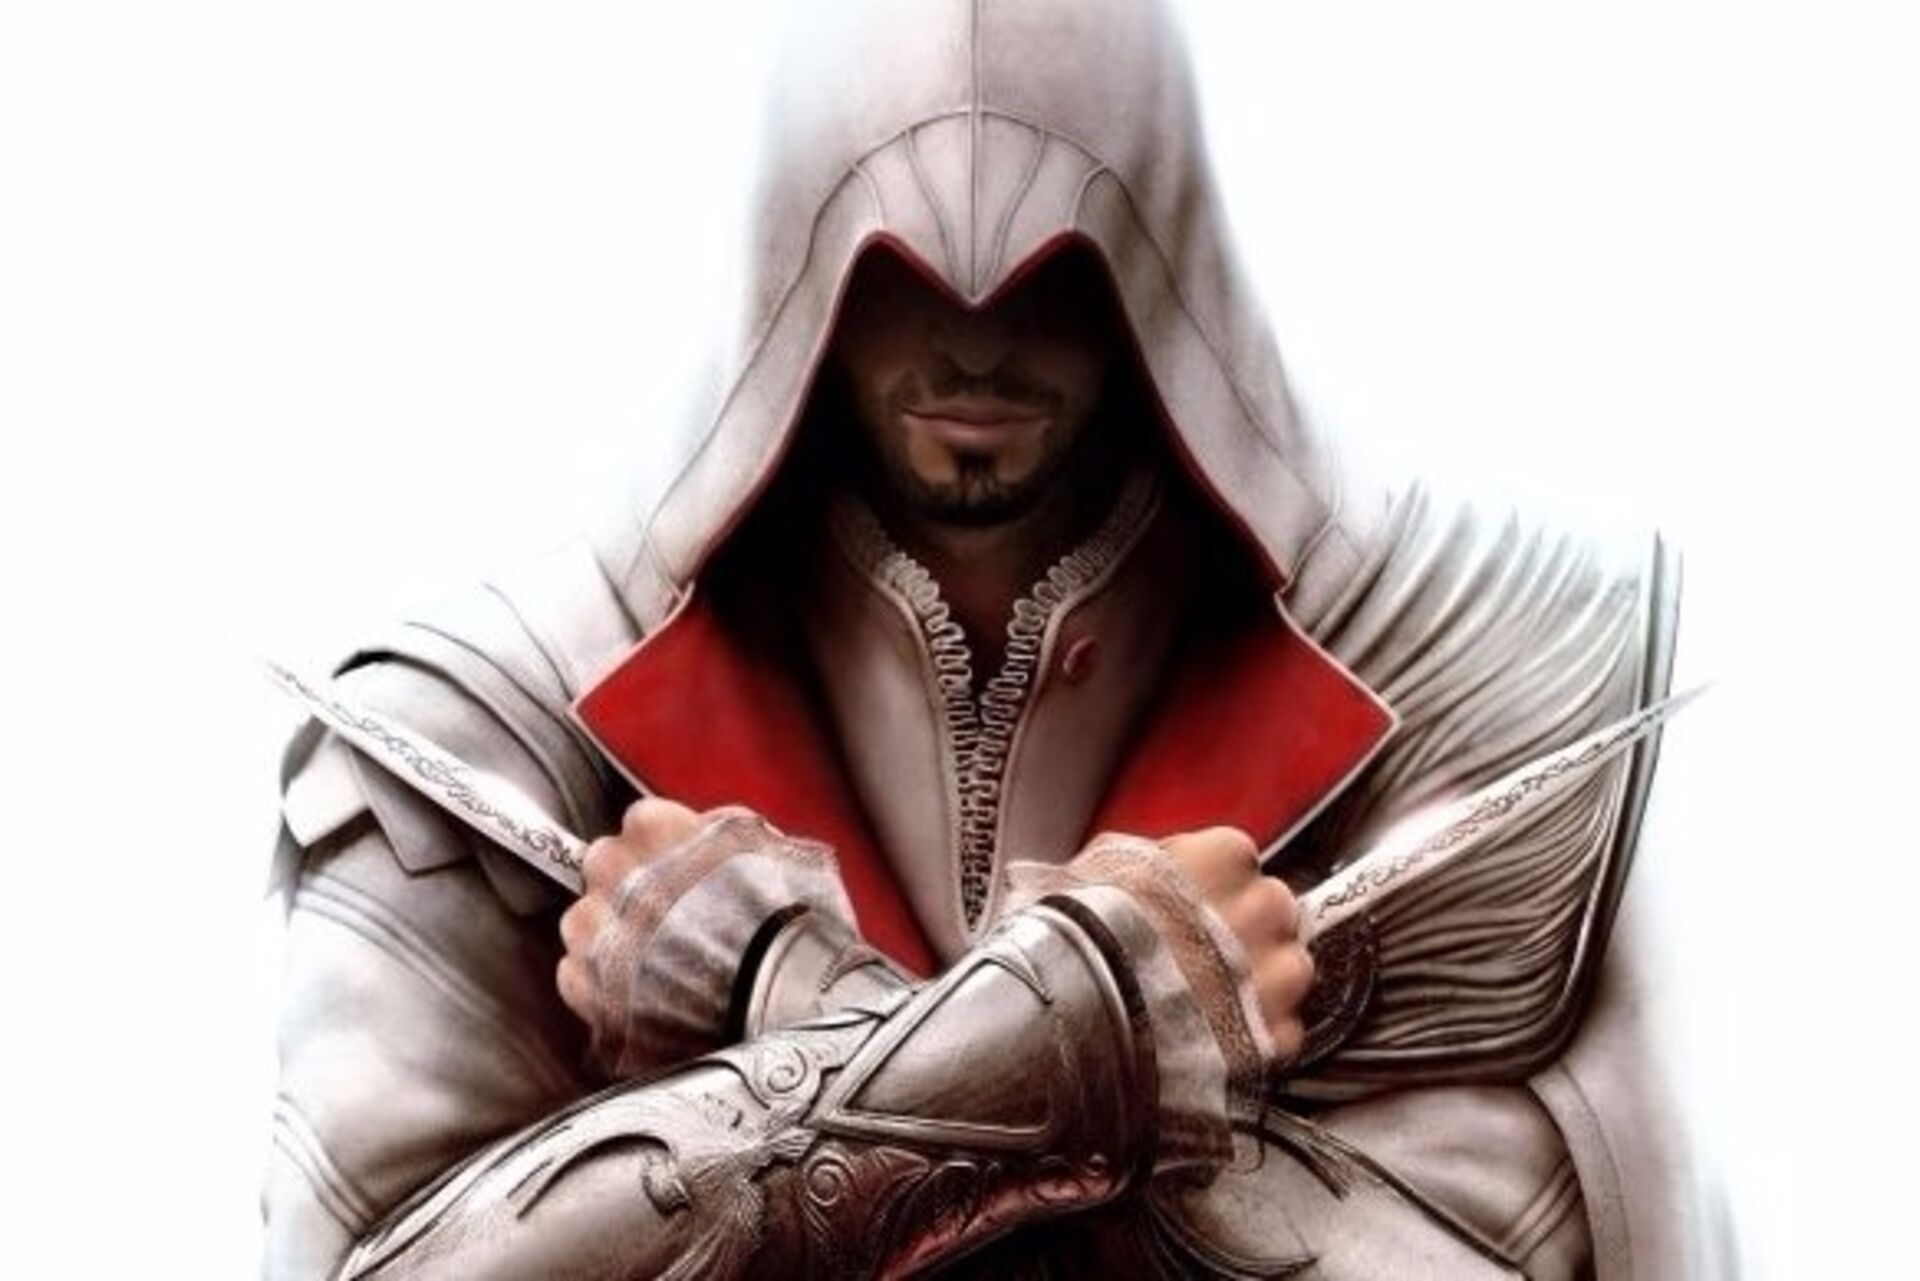 It Looks Like Assassin S Creed 2 Brotherhood Revelations Are Headed To Ps4 Xbox One Eurogamer Net